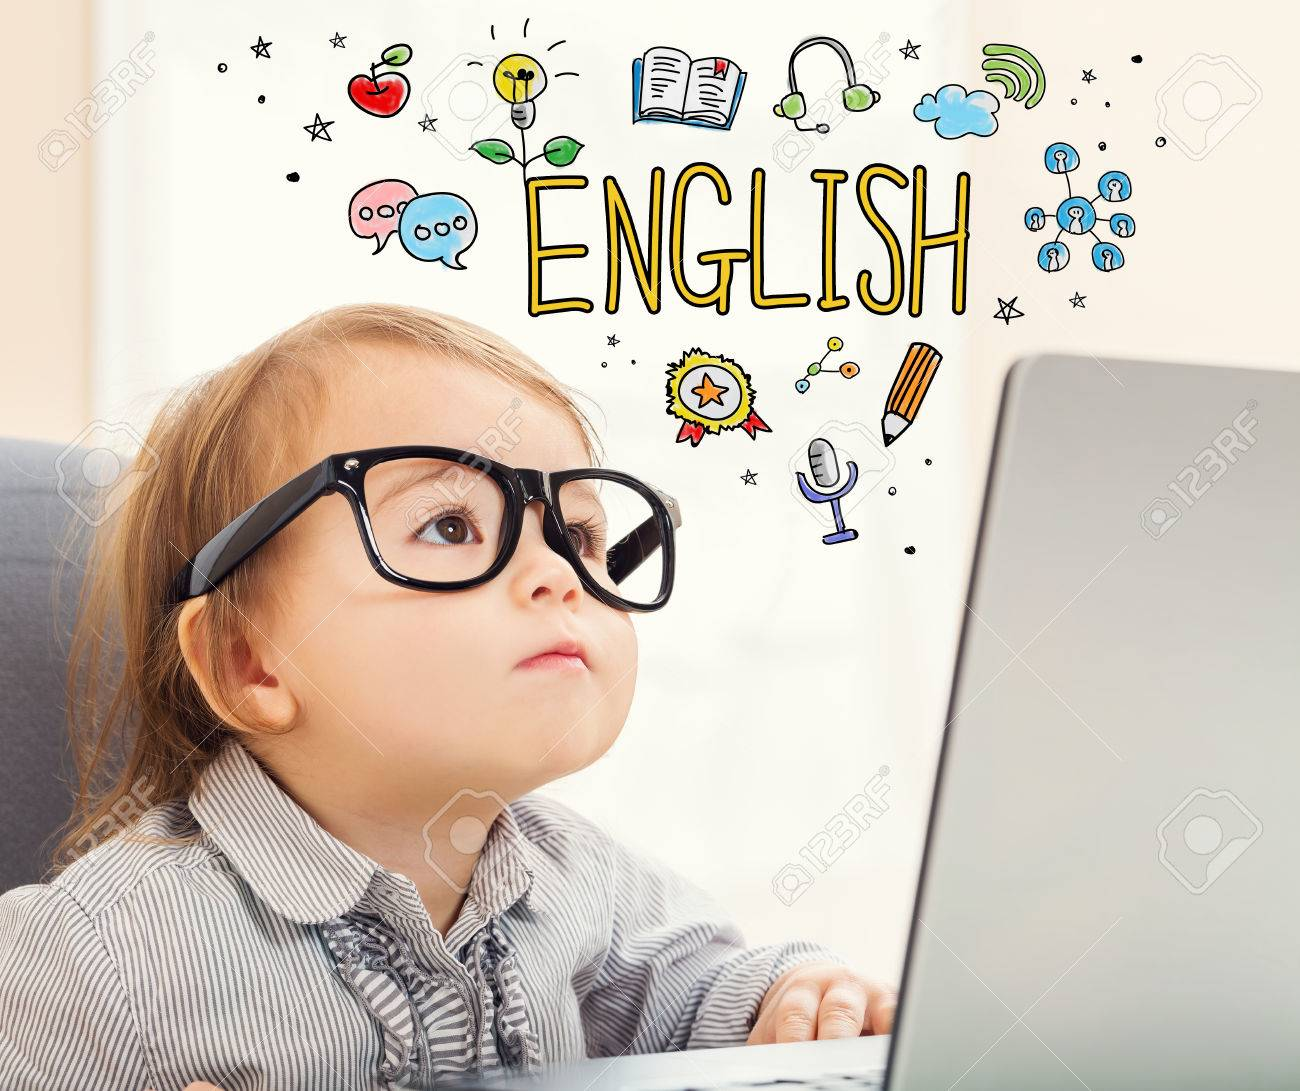 English concept with toddler girl using her laptop Standard-Bild - 59198850